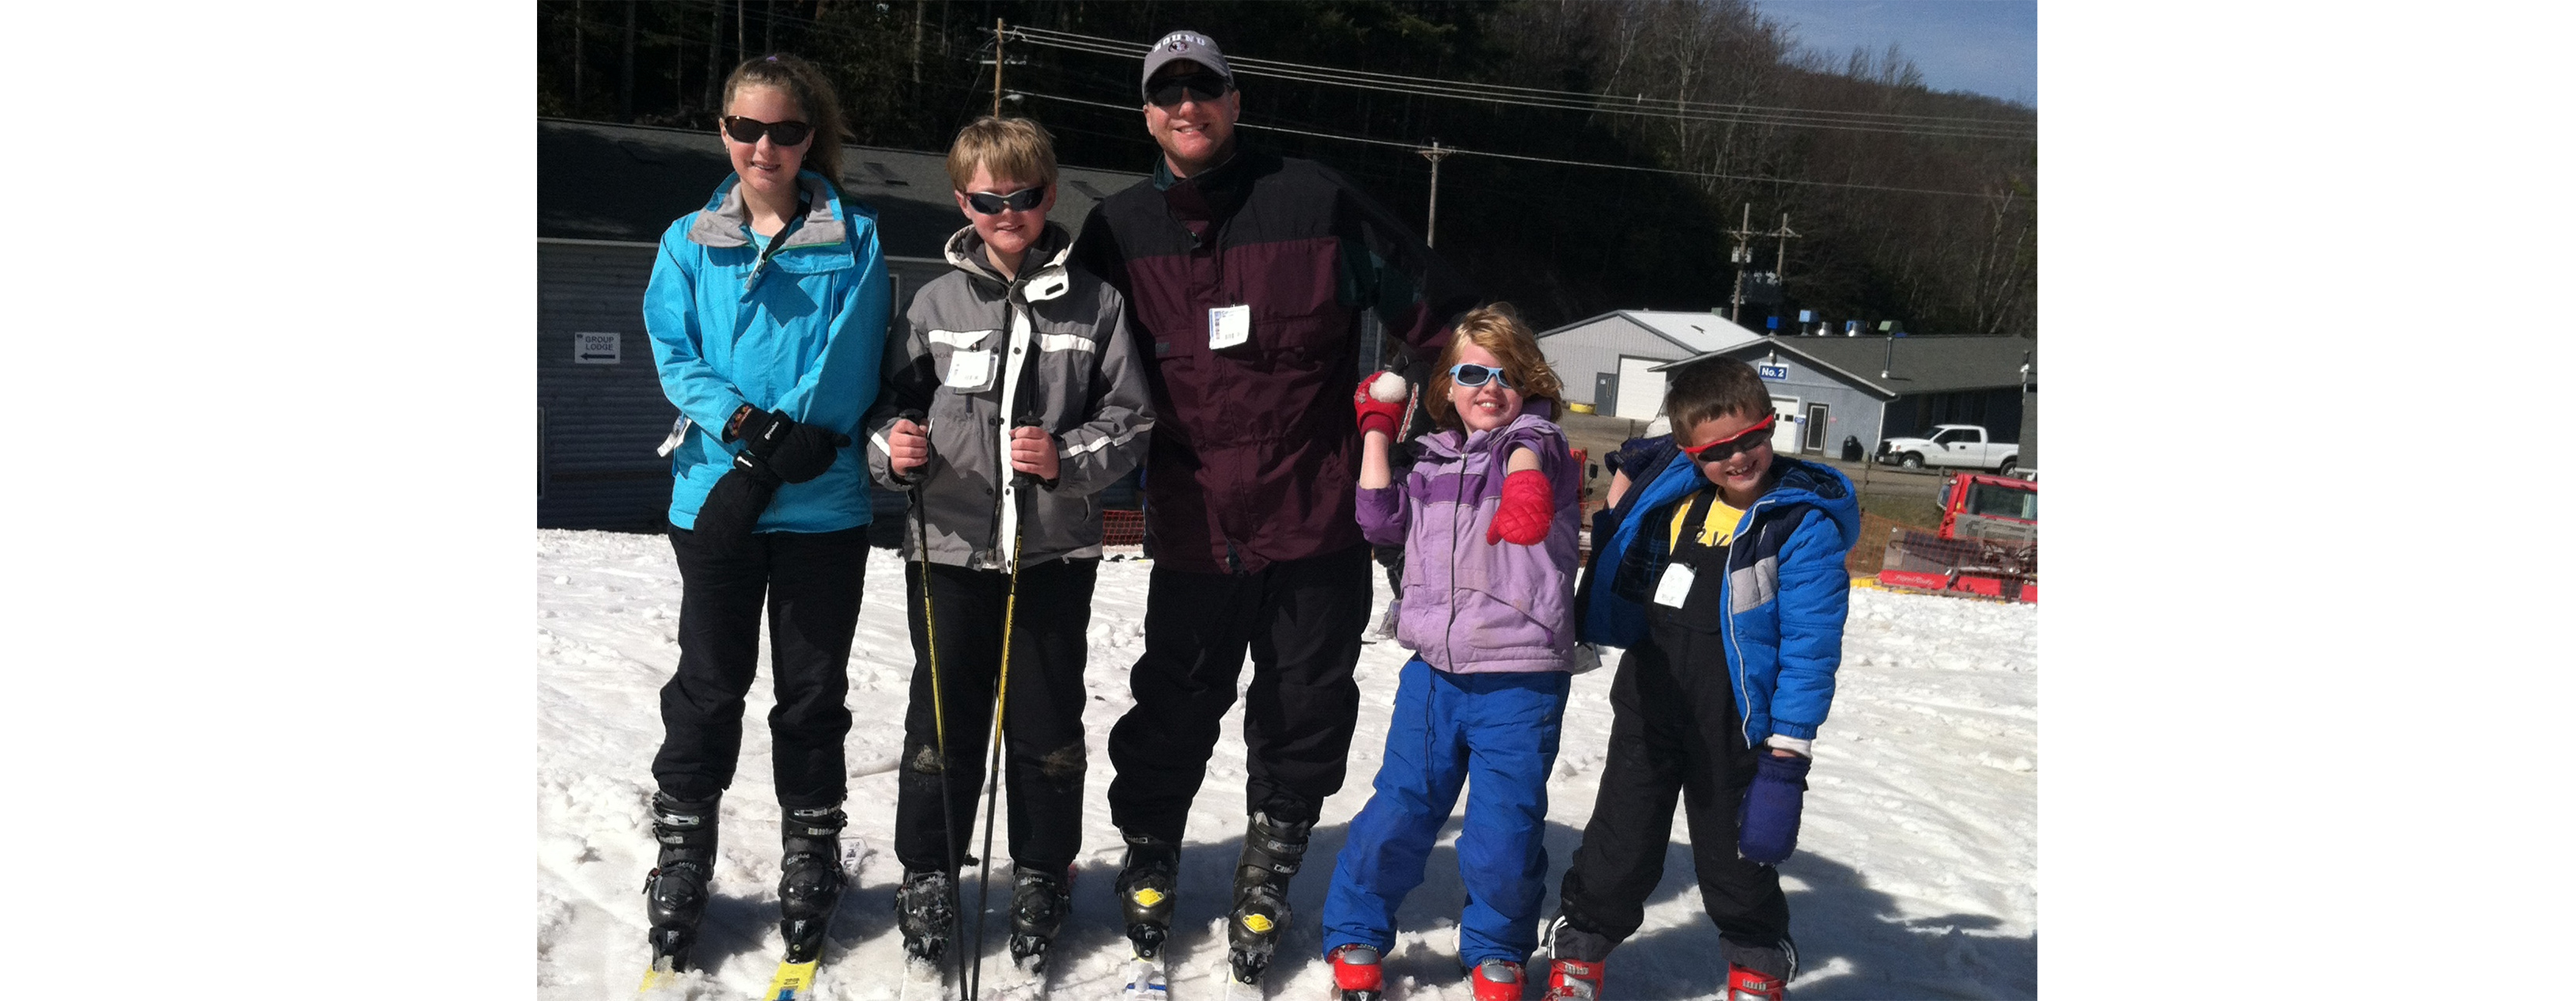 Judge Osterhaus is pictured with a group of children on a ski hill